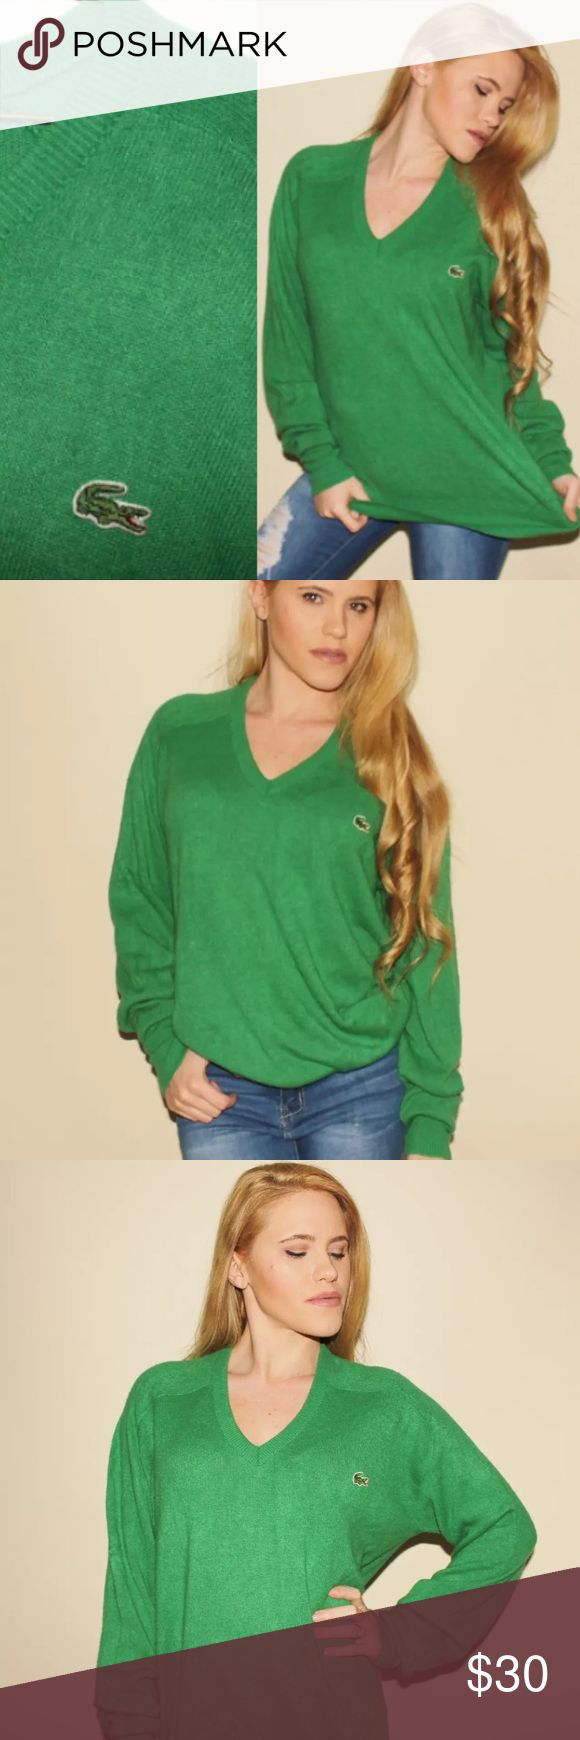 """70s Green Lacoste Sweater Preppy Slouchy Large  DESCRIPTION   ~ Green Izod Lacoste Sweater from the 1970's  ~ 100% Orlon Acrylic Material  ~ V Neck  ~ Crocodile on chest  ~ Pullover  ~ Oversized Fit  ~ Brand: Izod Lacoste  ~ Great Condition     MEASUREMENTS   ~ Best Fits: Women's Size Large/ Men's Size Medium-Large  ~ Size on Tag: Large  ~ Shoulder to Shoulder: 20""""  ~ Sleeve Length: 27""""  ~ Armpit to Armpit (Bust): 43""""  ~ Waist: 39""""  ~ Length from Top of Shoulder to Hem: 26.5"""" Lacoste…"""